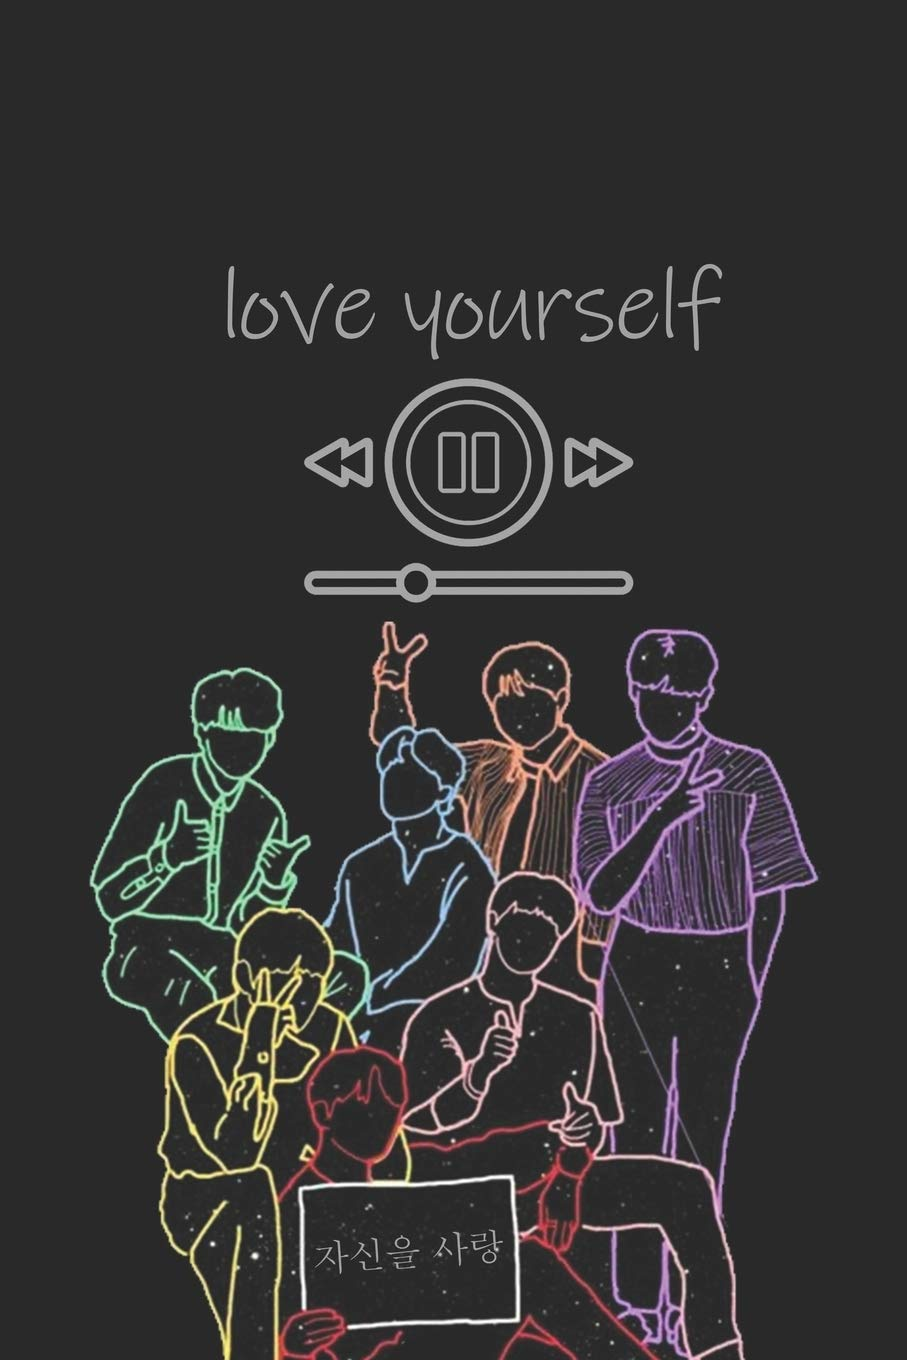 Bts Love Yourself Song Played Journal Cover K Pop 110 Lined Pages Journal Notebook Kpop Accessories Kpop Gift